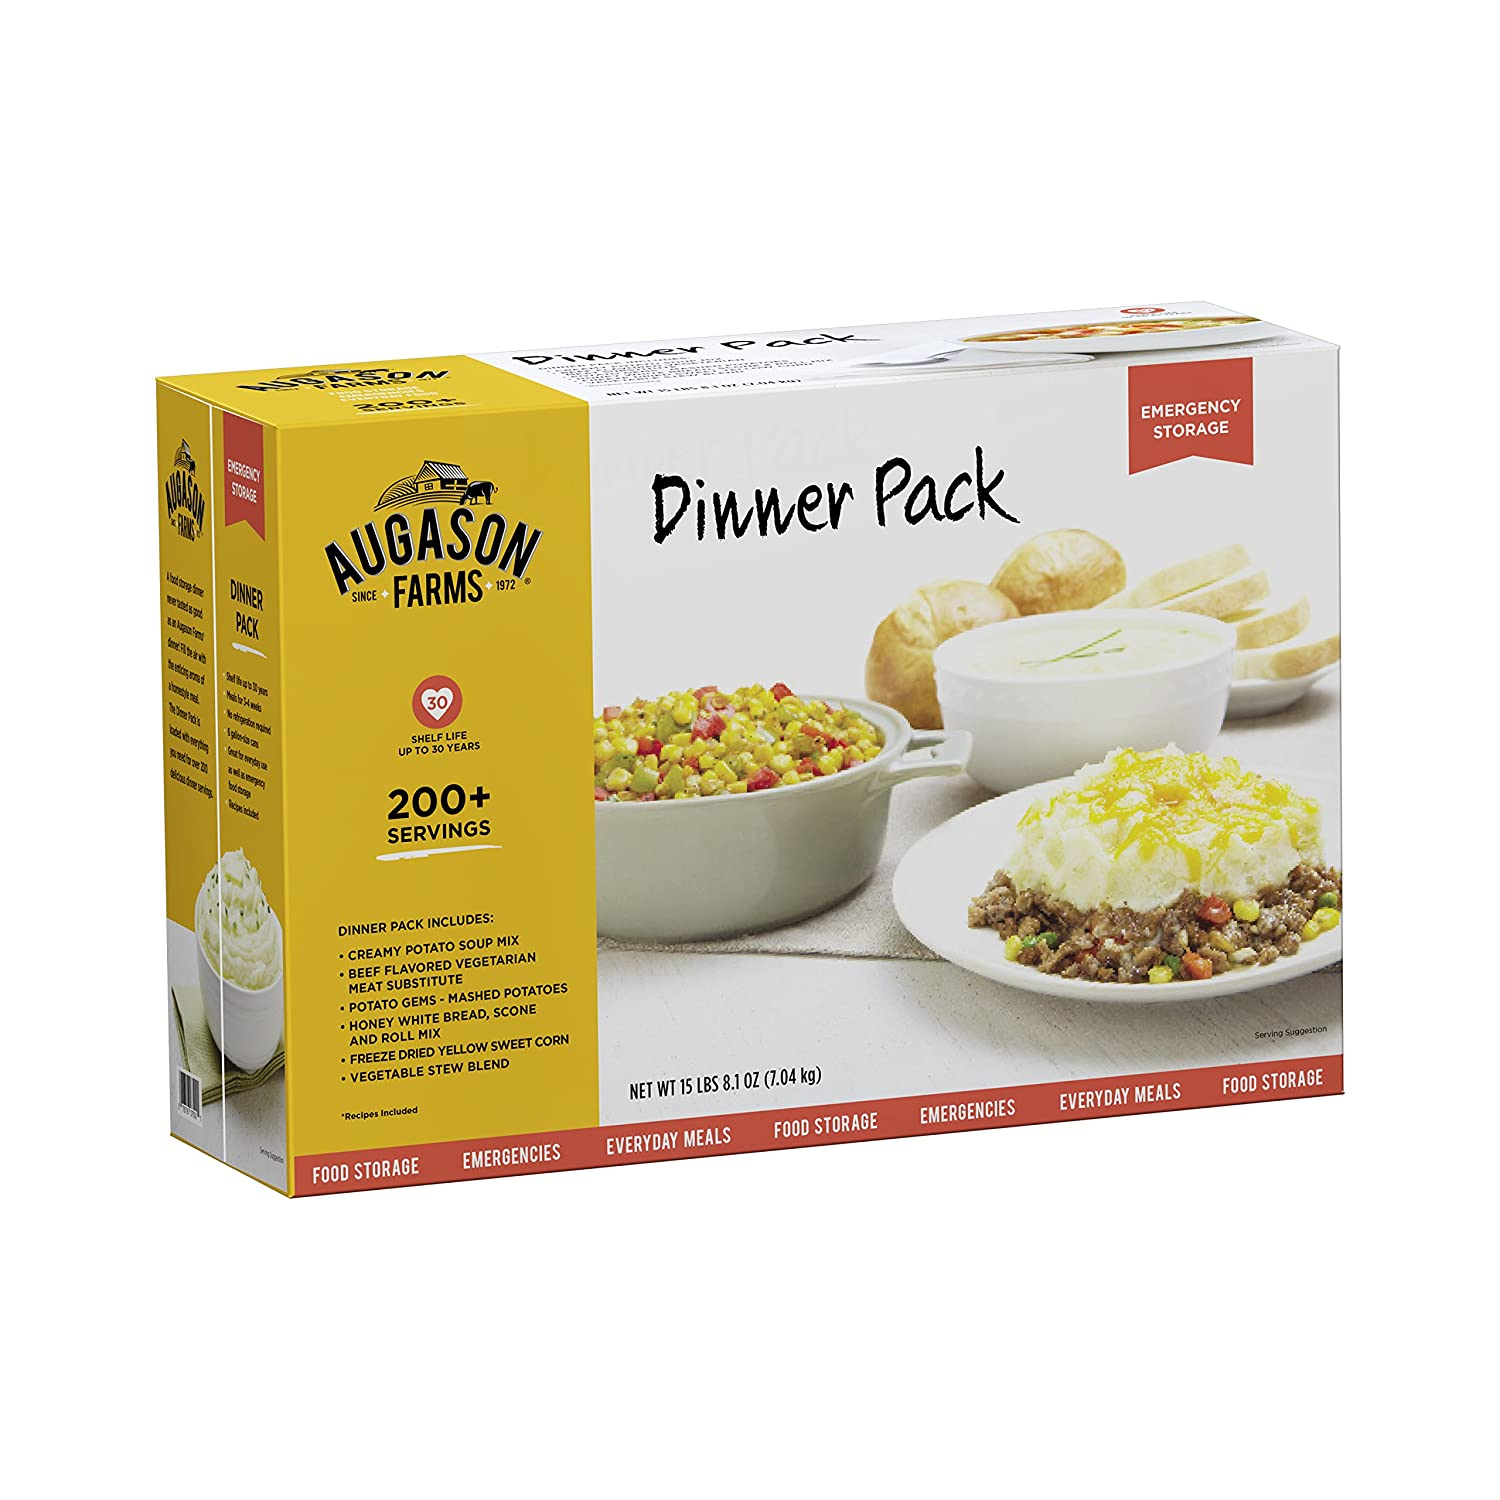 Amazon augason farms dinner pack emergency food storage kit 15 amazon augason farms dinner pack emergency food storage kit 15 lbs 81 oz camping freeze dried food sports outdoors forumfinder Image collections